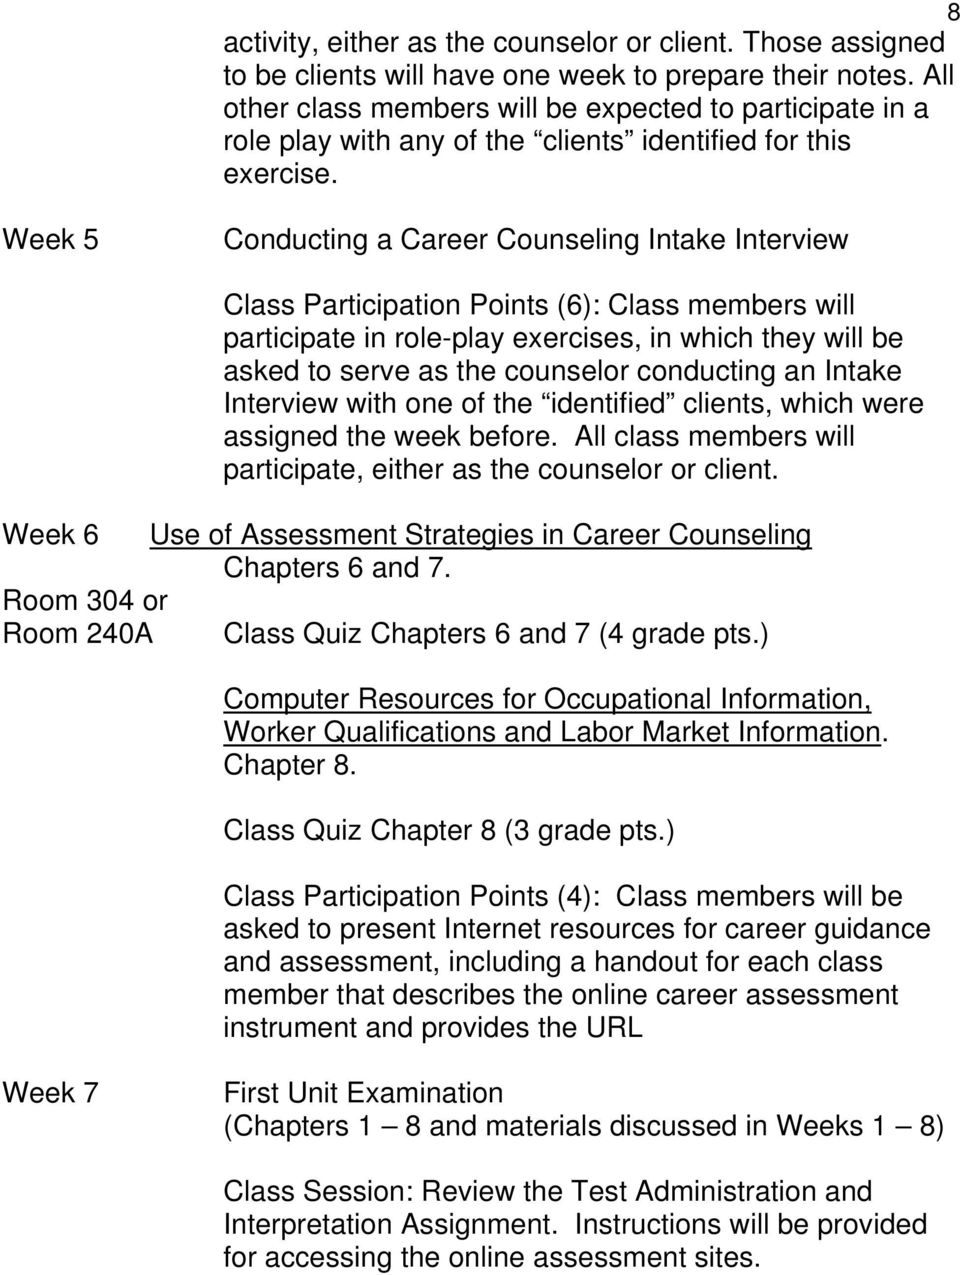 Week 5 Conducting a Career Counseling Intake Interview Class Participation Points (6): Class members will participate in role-play exercises, in which they will be asked to serve as the counselor